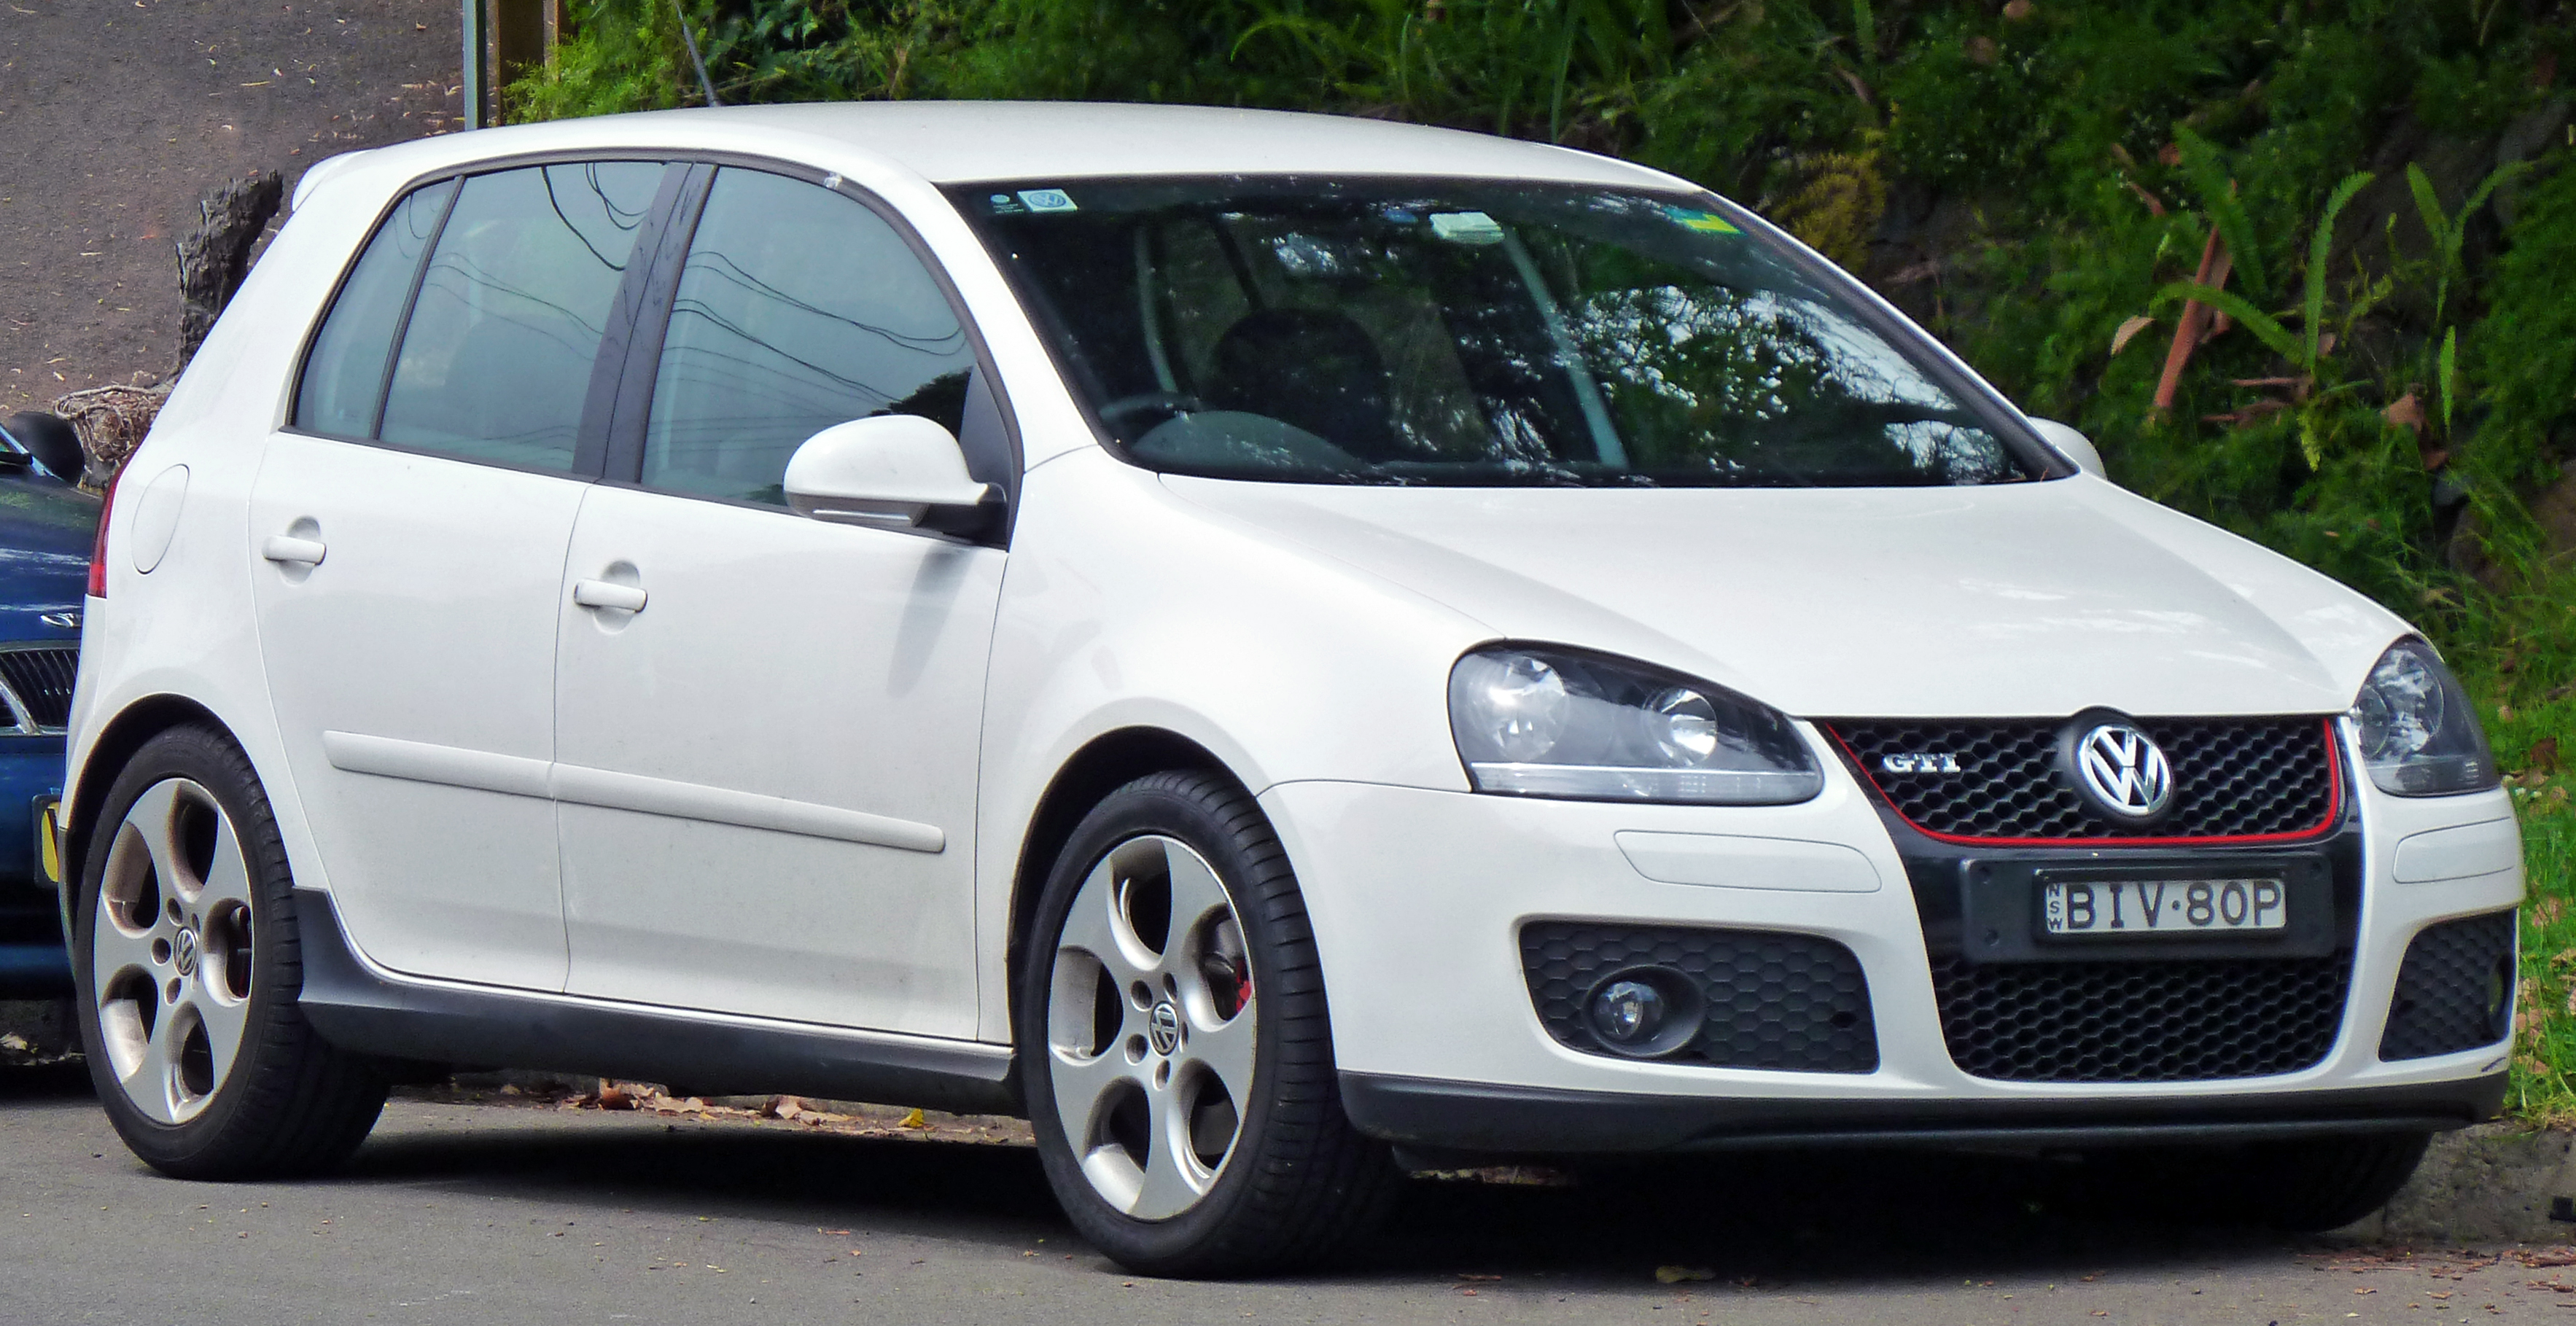 file 2009 volkswagen golf 1k my09 gti 5 door hatchback 2010 12 17 jpg wikimedia commons. Black Bedroom Furniture Sets. Home Design Ideas